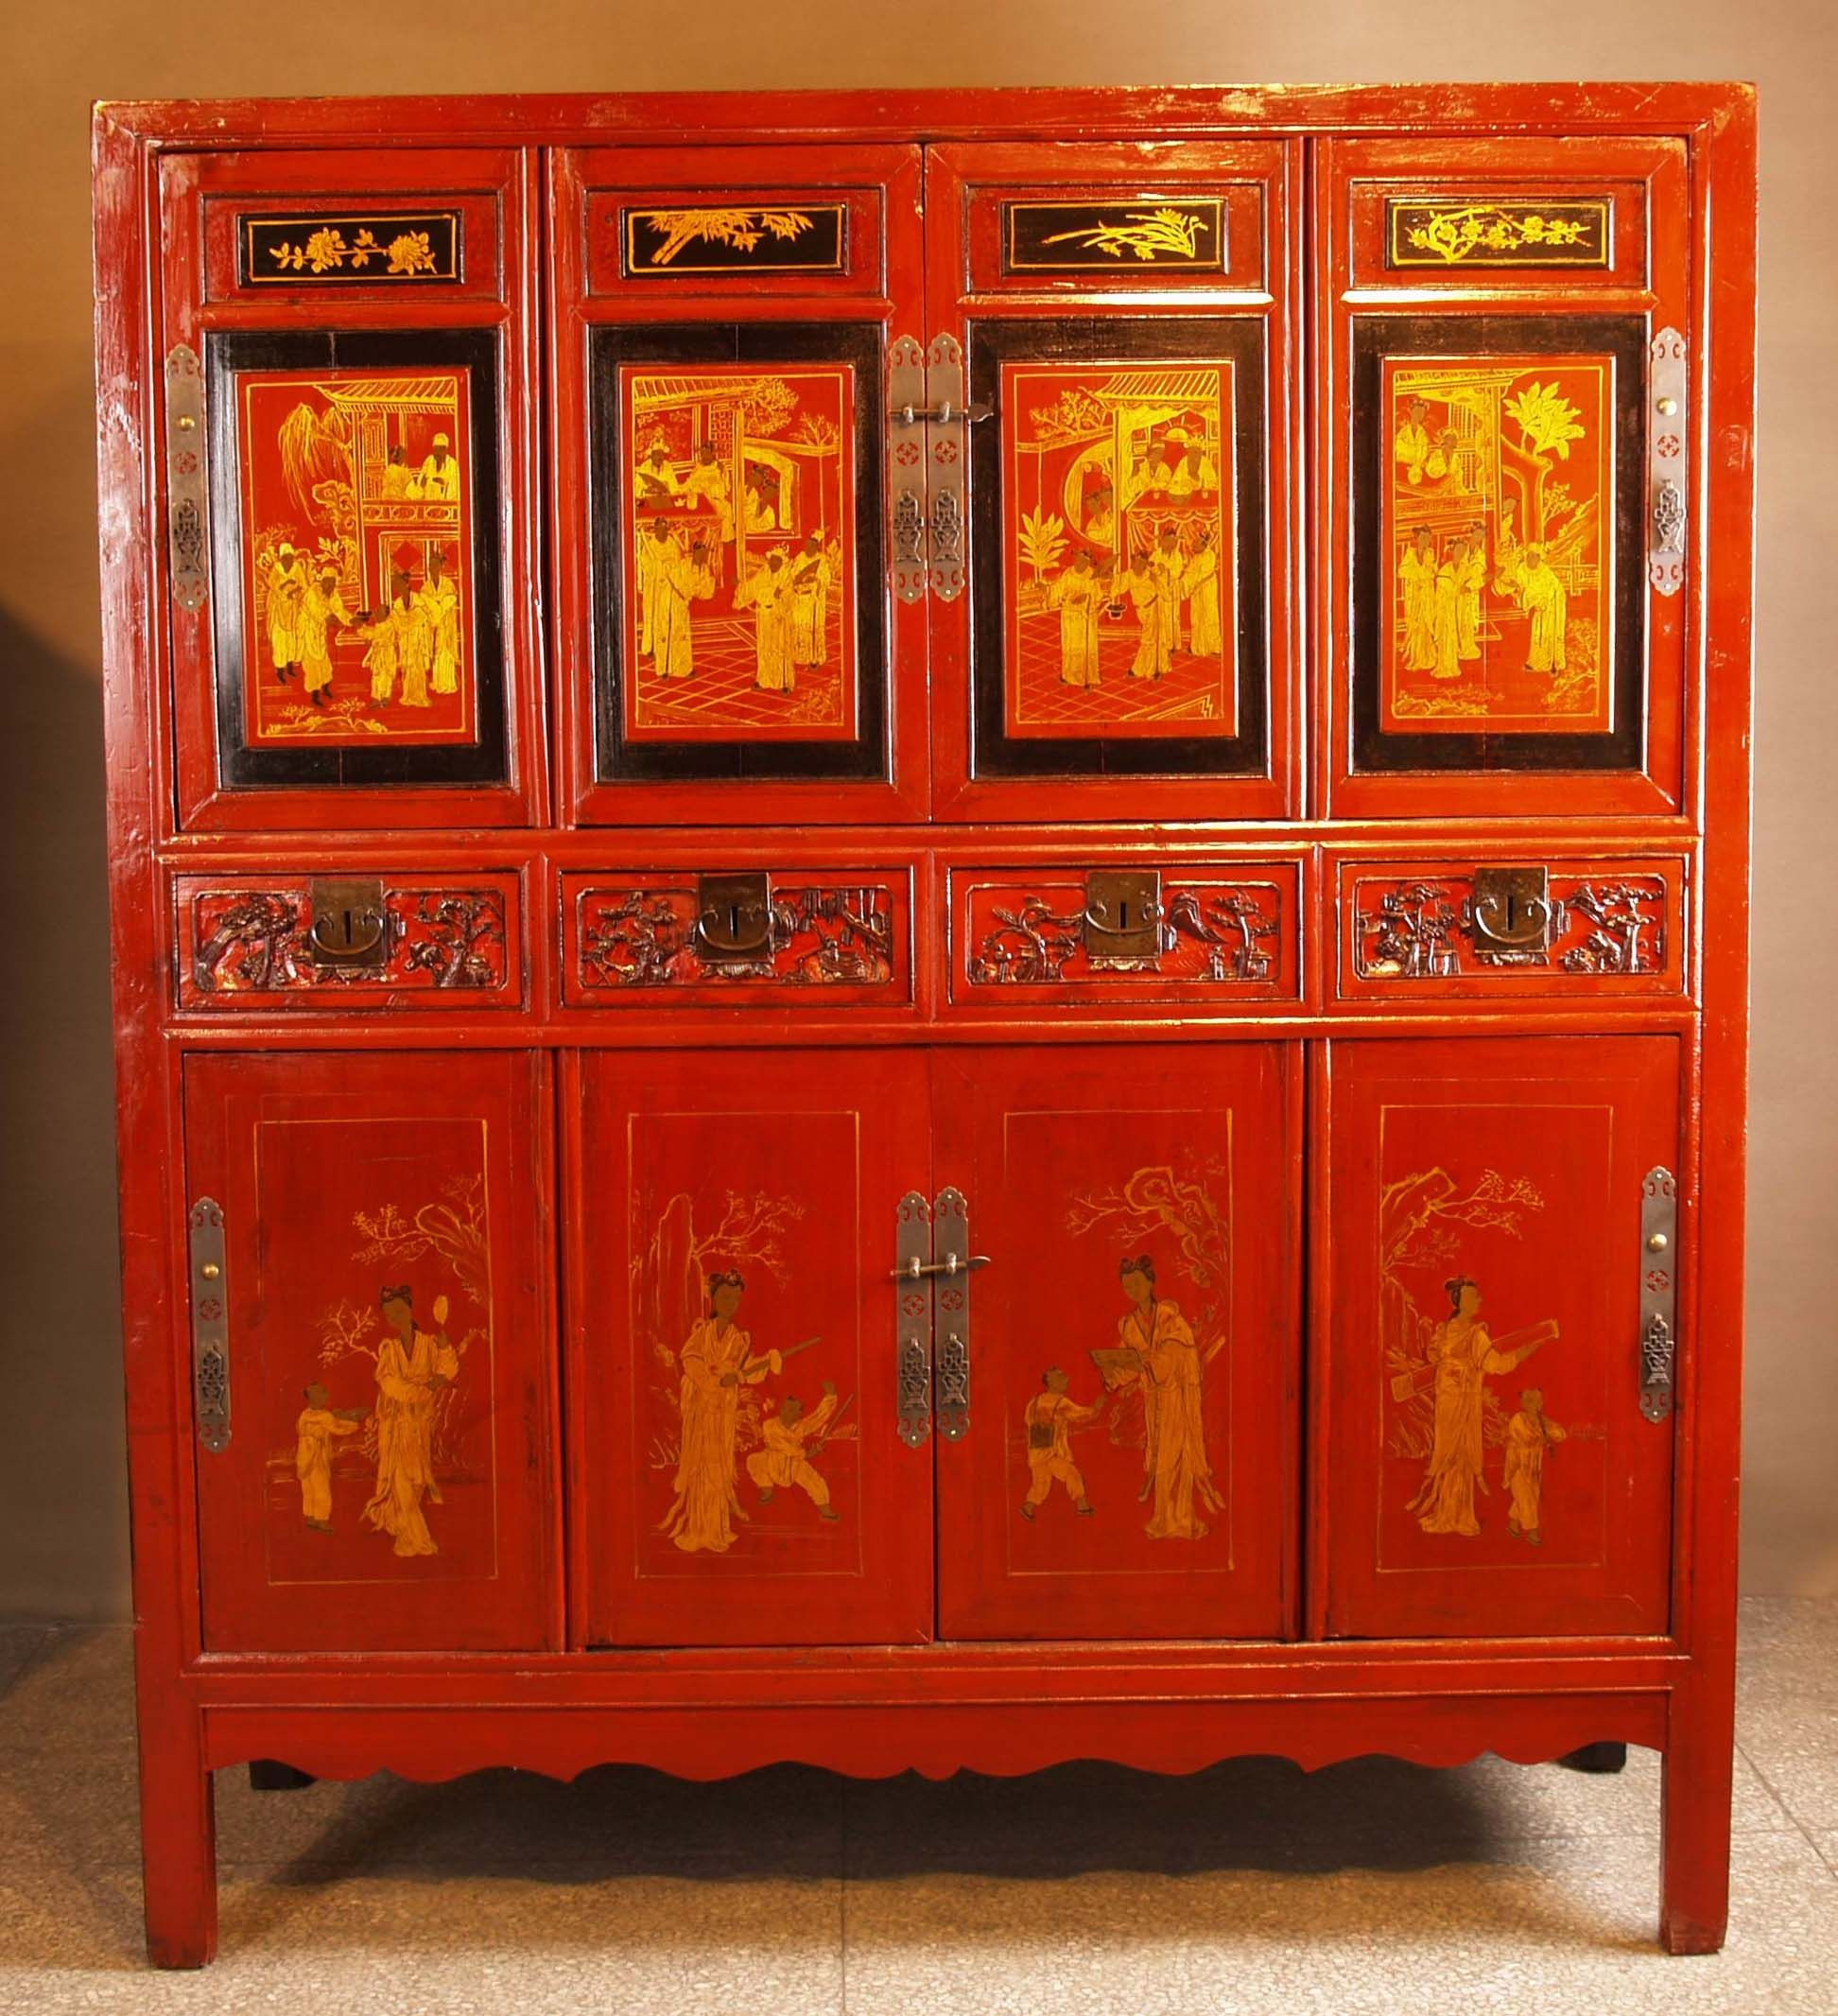 Inexpensive Antique Furniture: Asian Antique Furniture